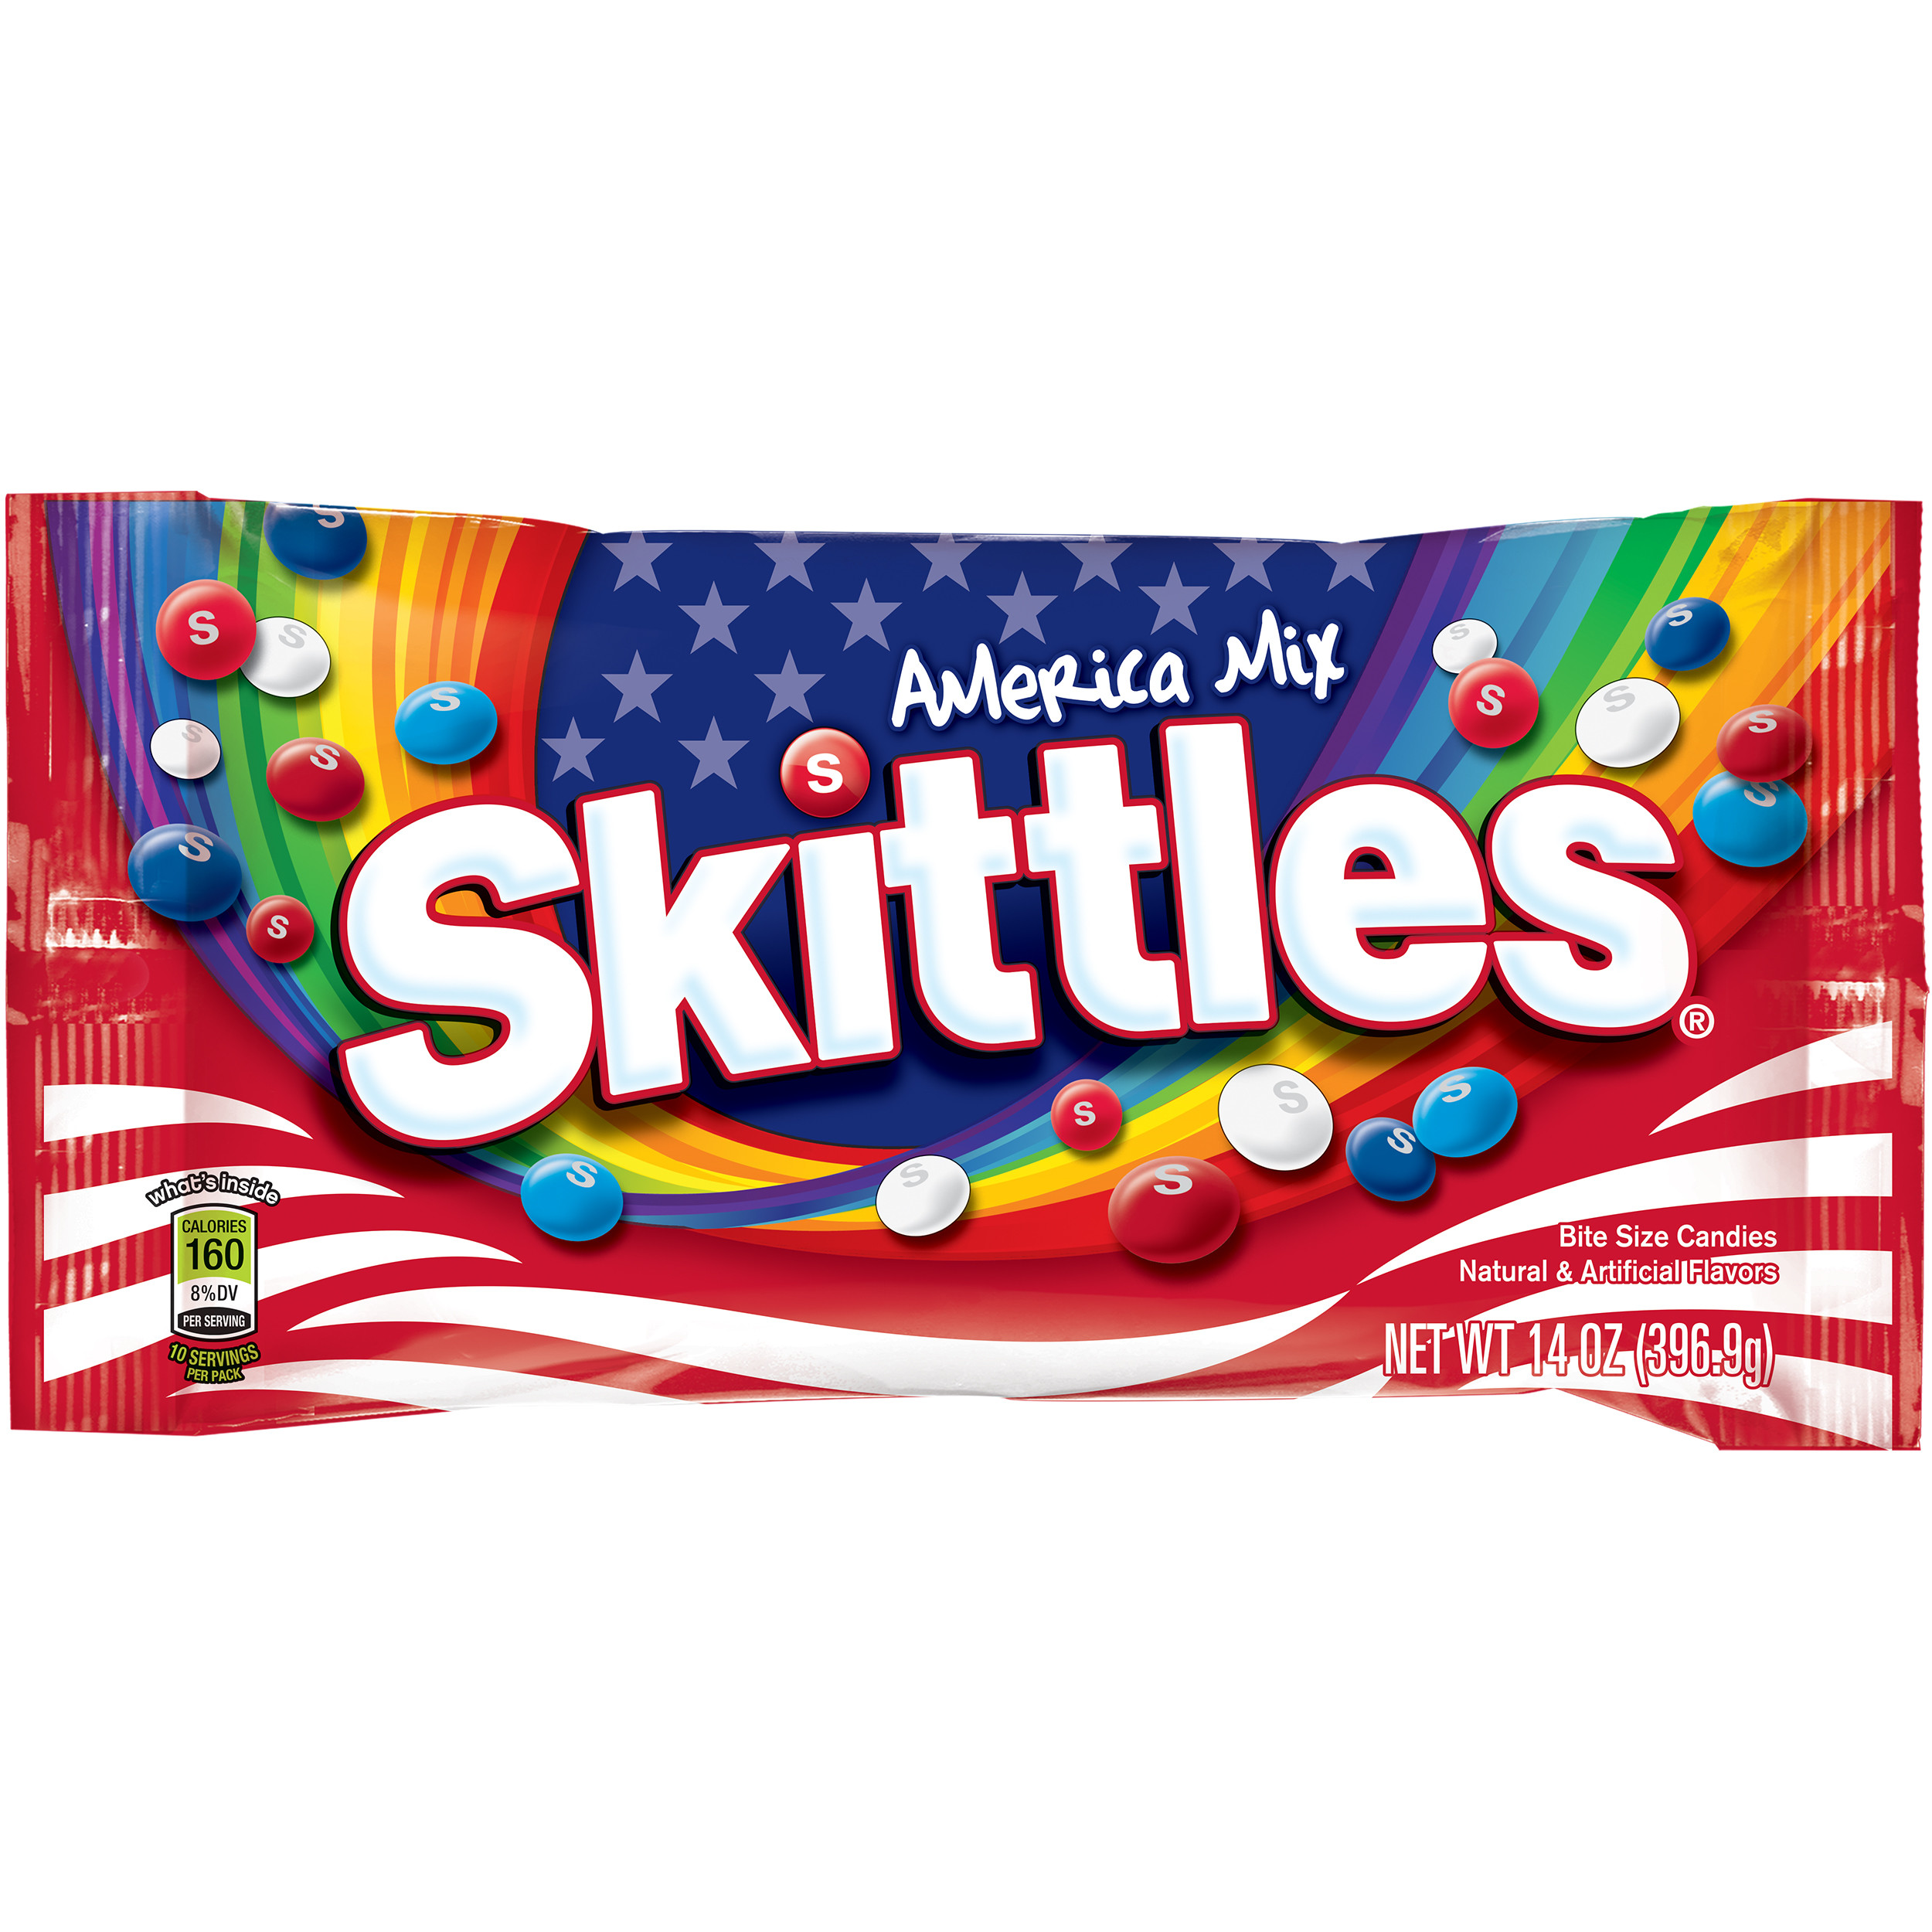 Skittles America Mix Candy Bag, 14 ounce